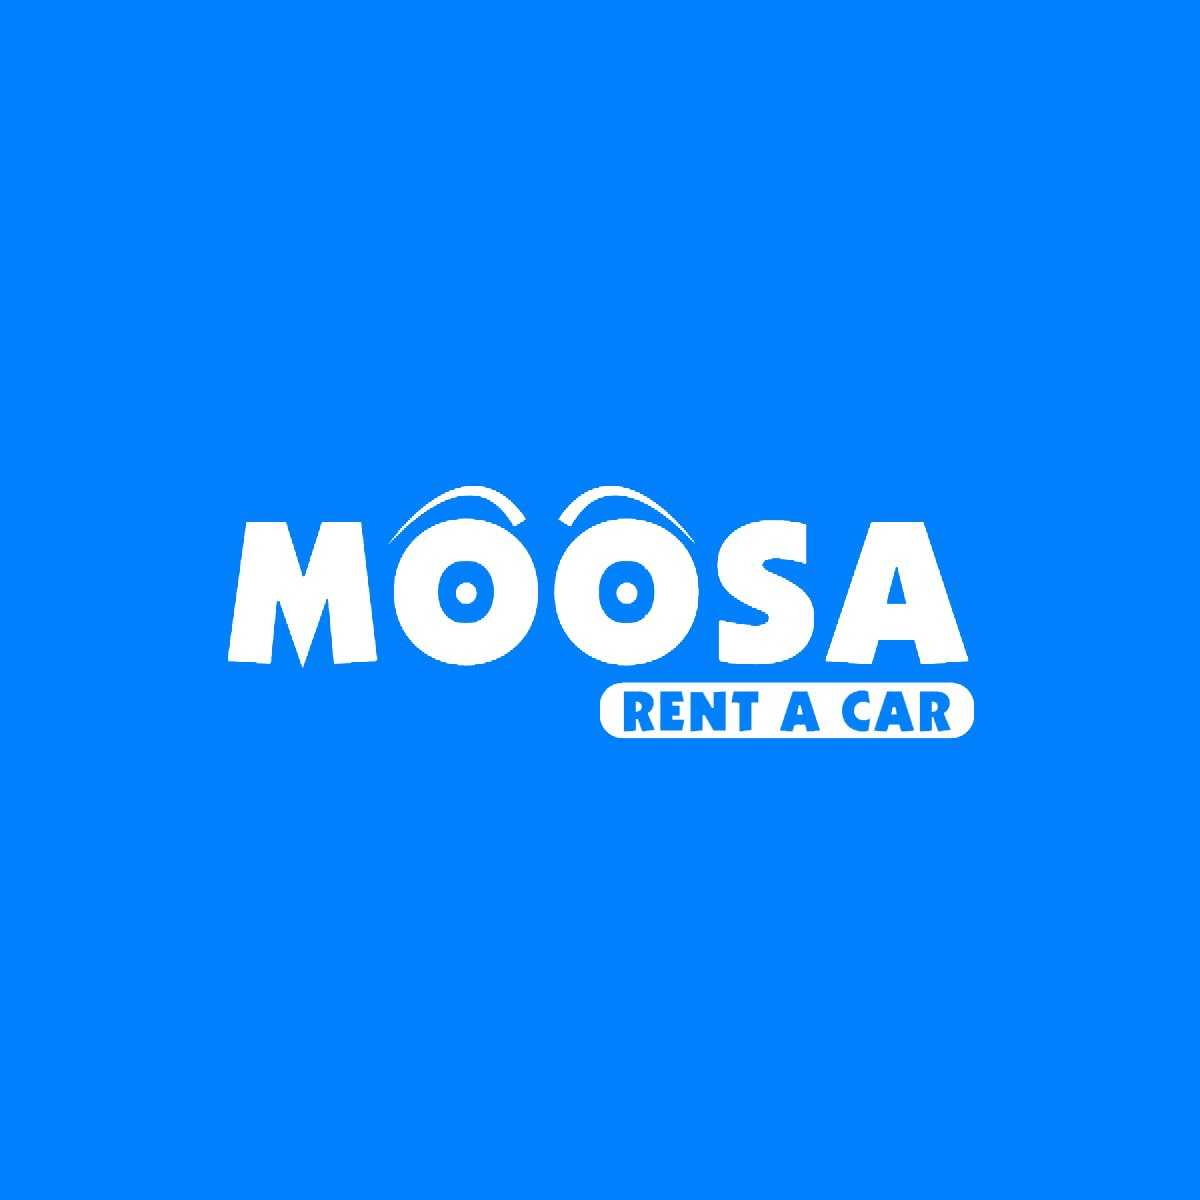 Moosa Cheap rent a car online Dubai